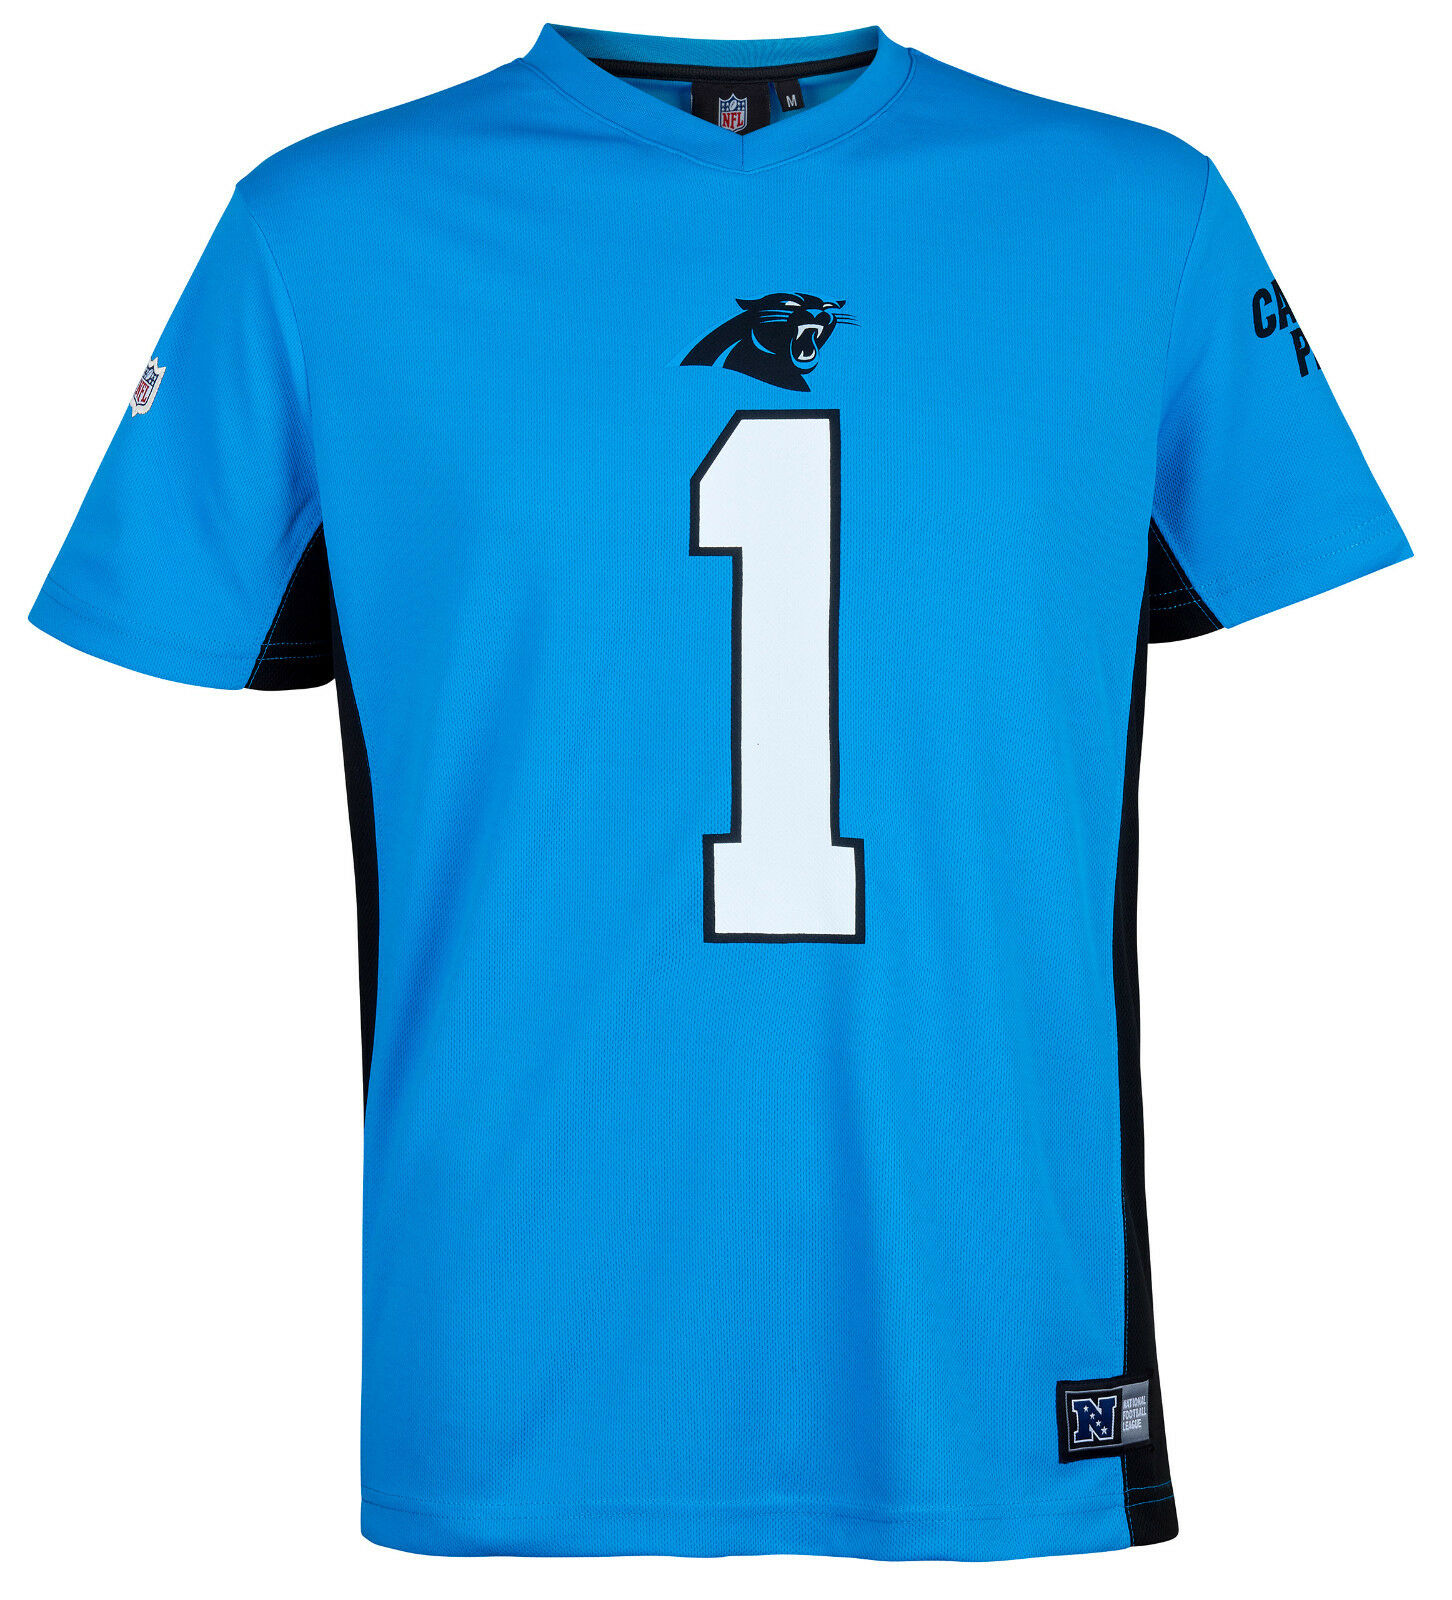 NFL Carolina Panthers Cam Newton 1 1 1 Trikot Jersey Shirt Polymesh 2018 Football f1908f